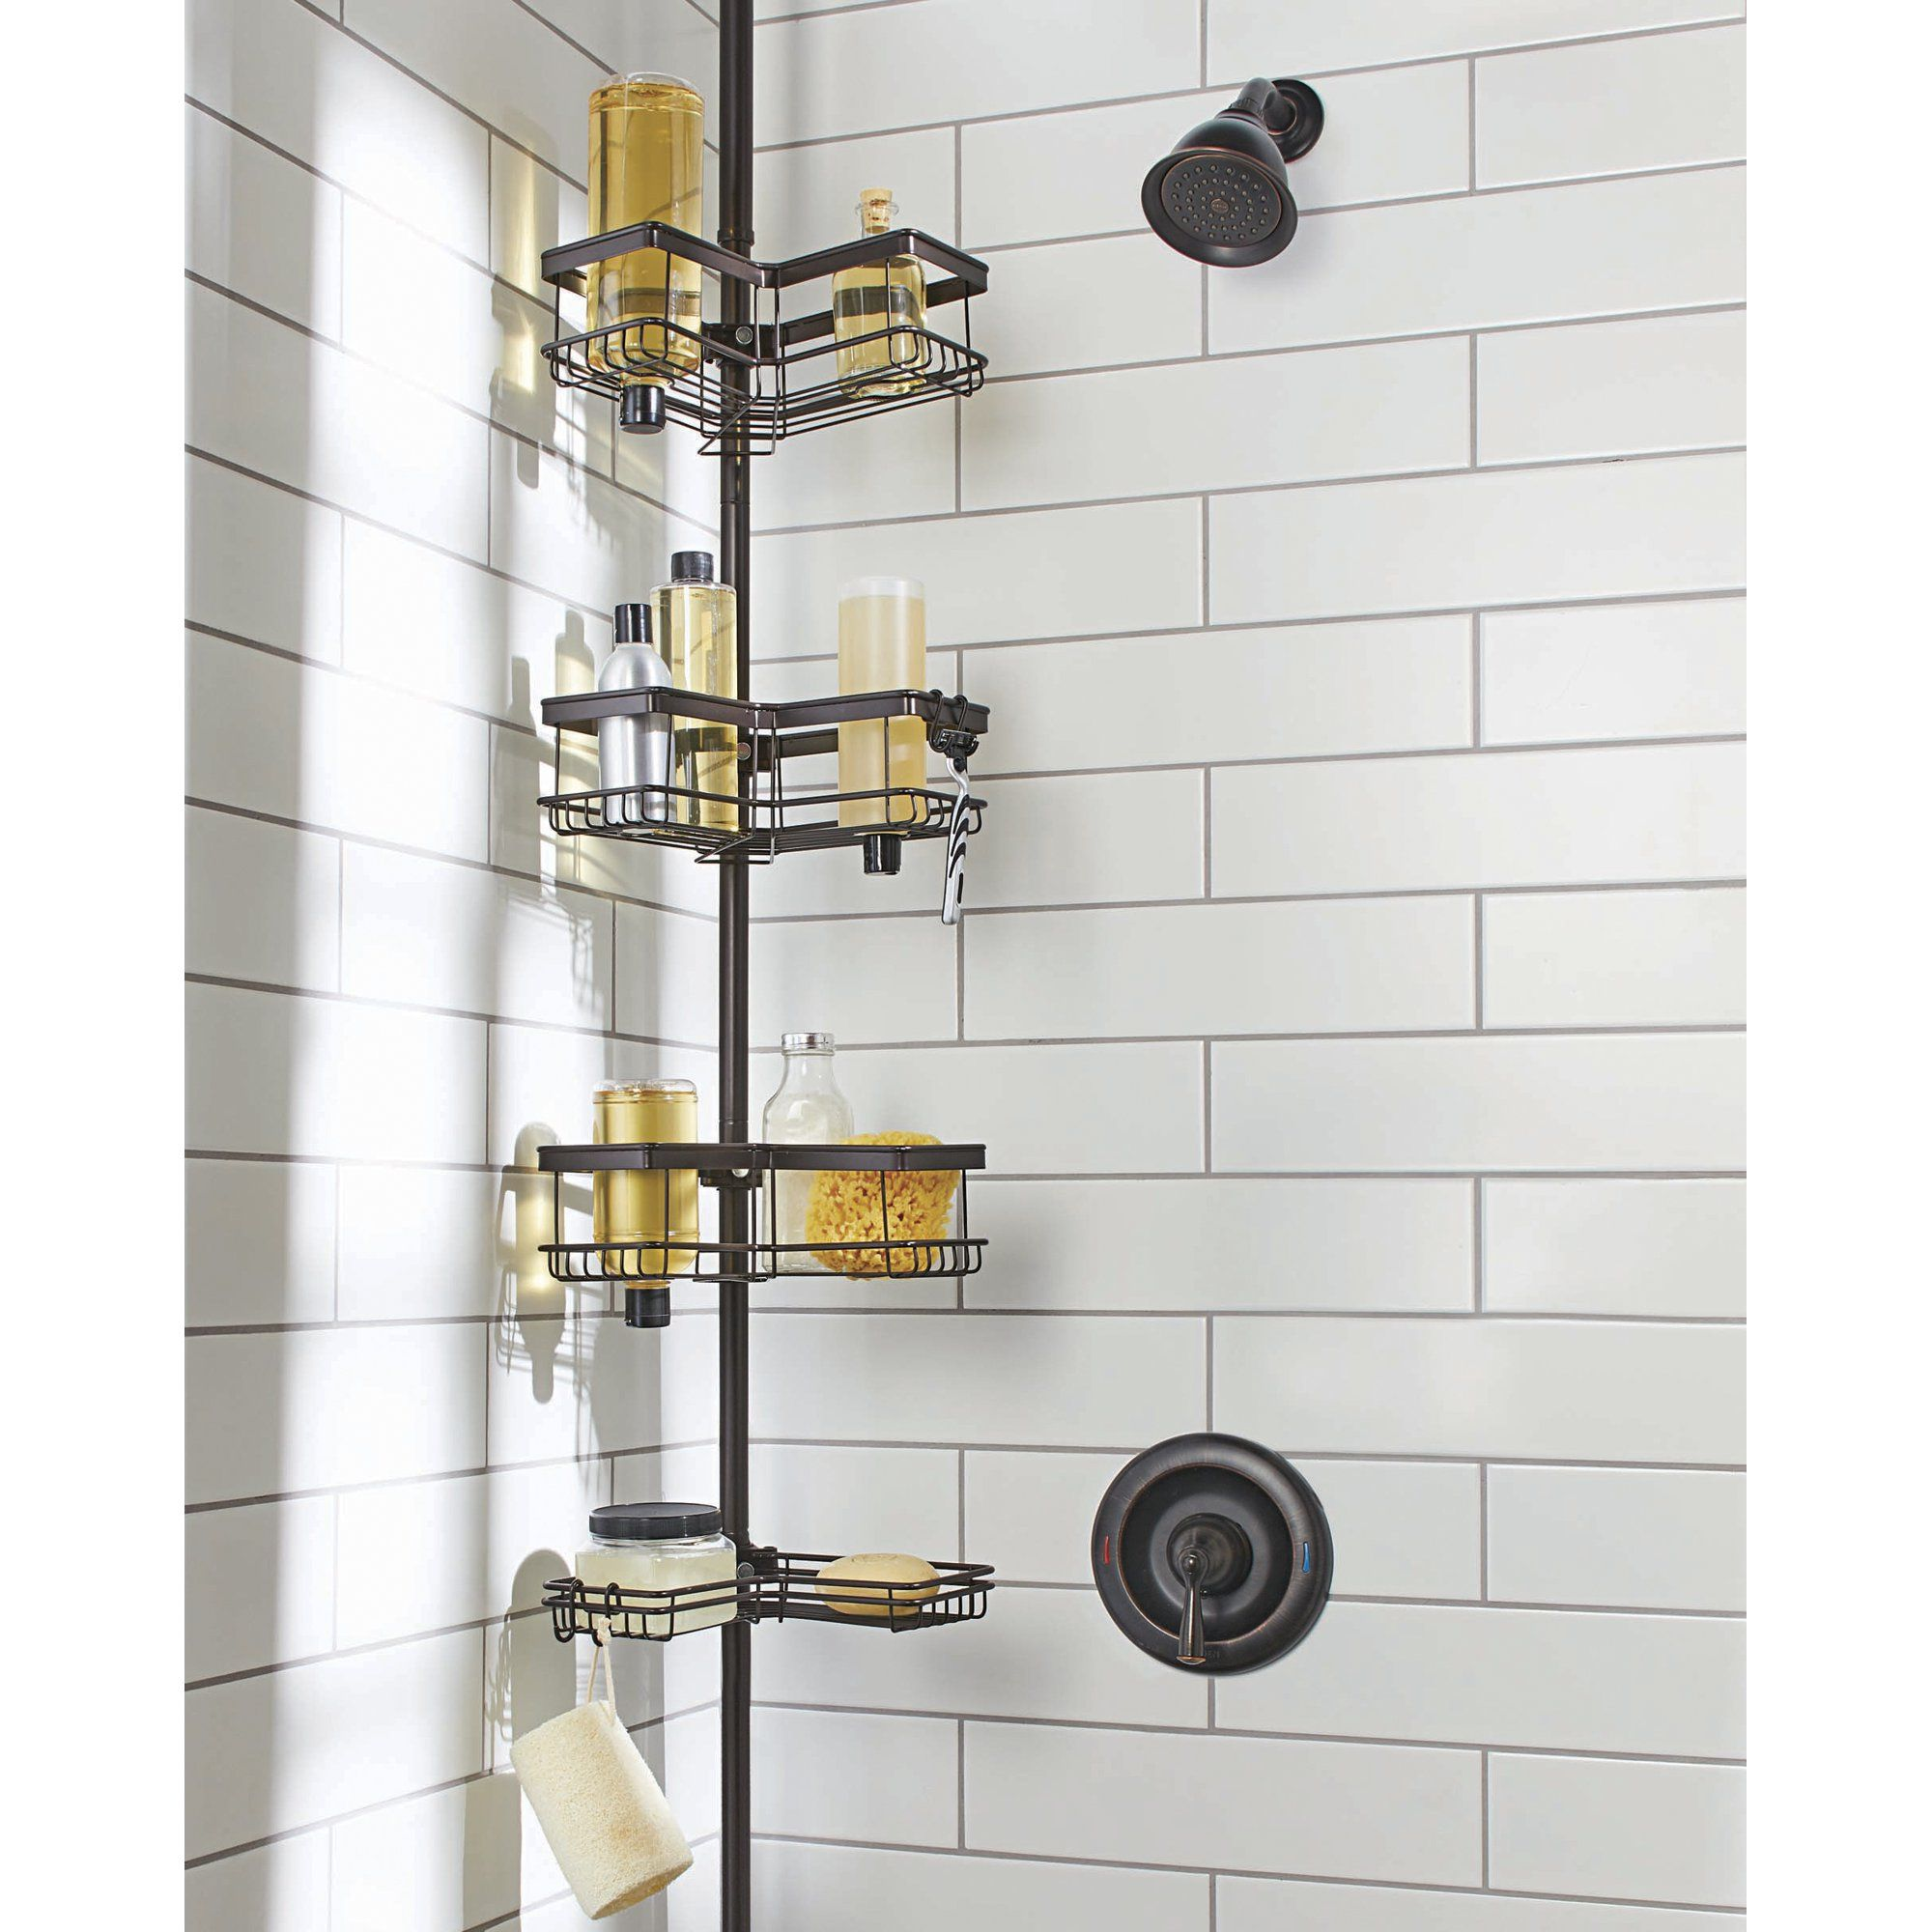 4 Tier Rust Resistant Contoured Tension Pole Shower Caddy 60 In To 108 In Oil Rubbed Bronze Walmart Com In 2021 Bathroom Shower Organization Shower Organization Shower Caddy